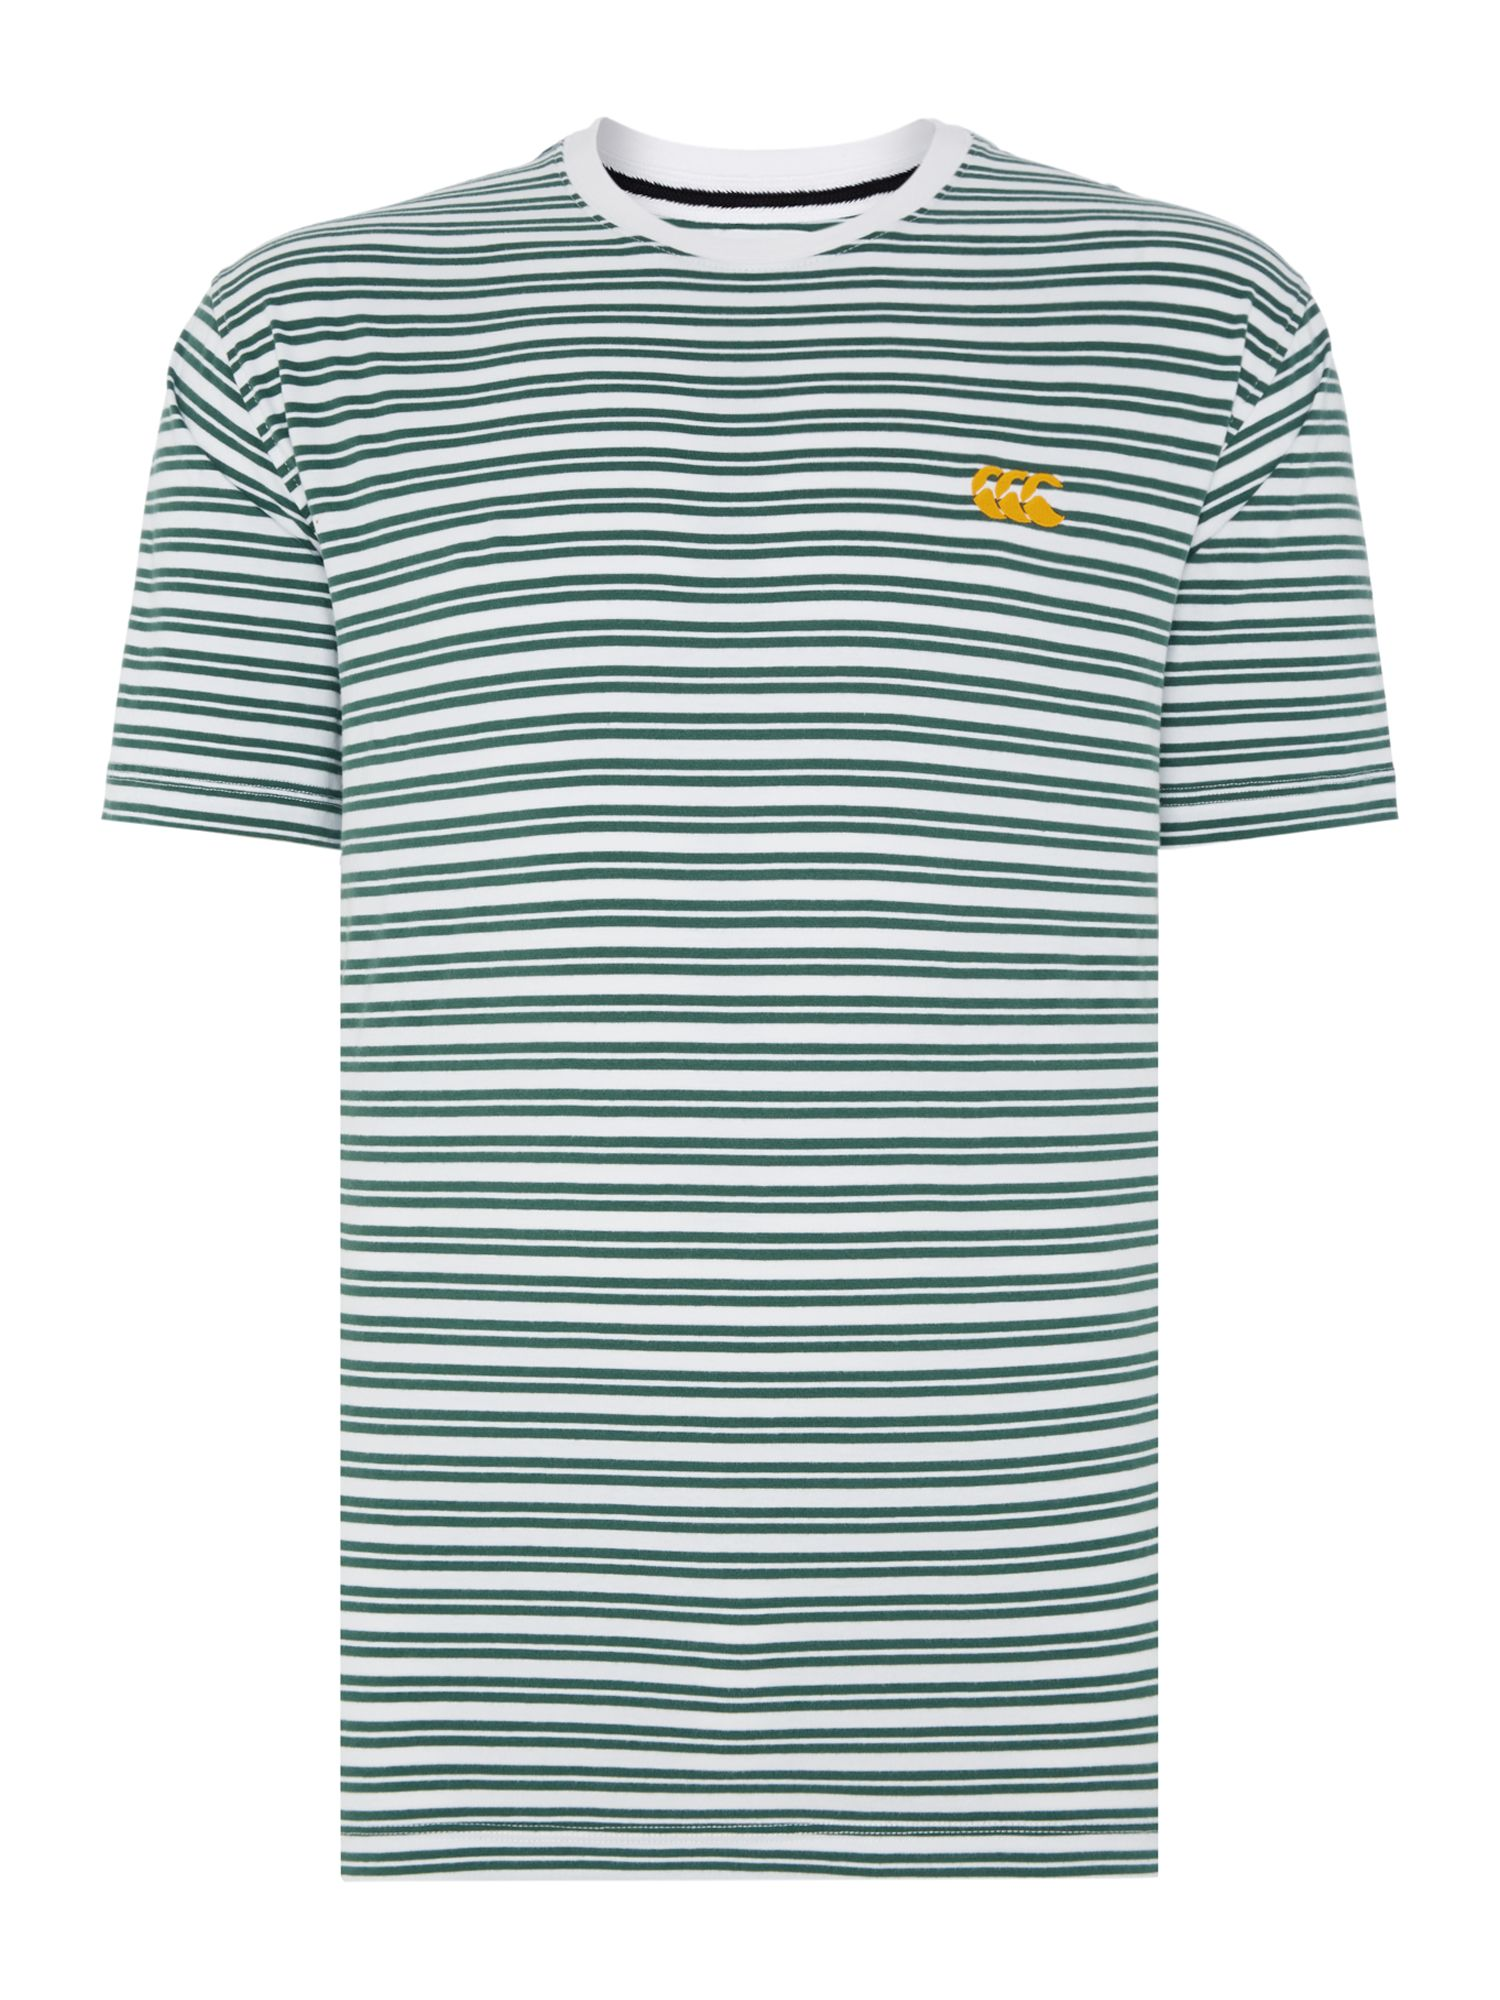 Men's Canterbury Yarn Dyed Stripe Tee, White